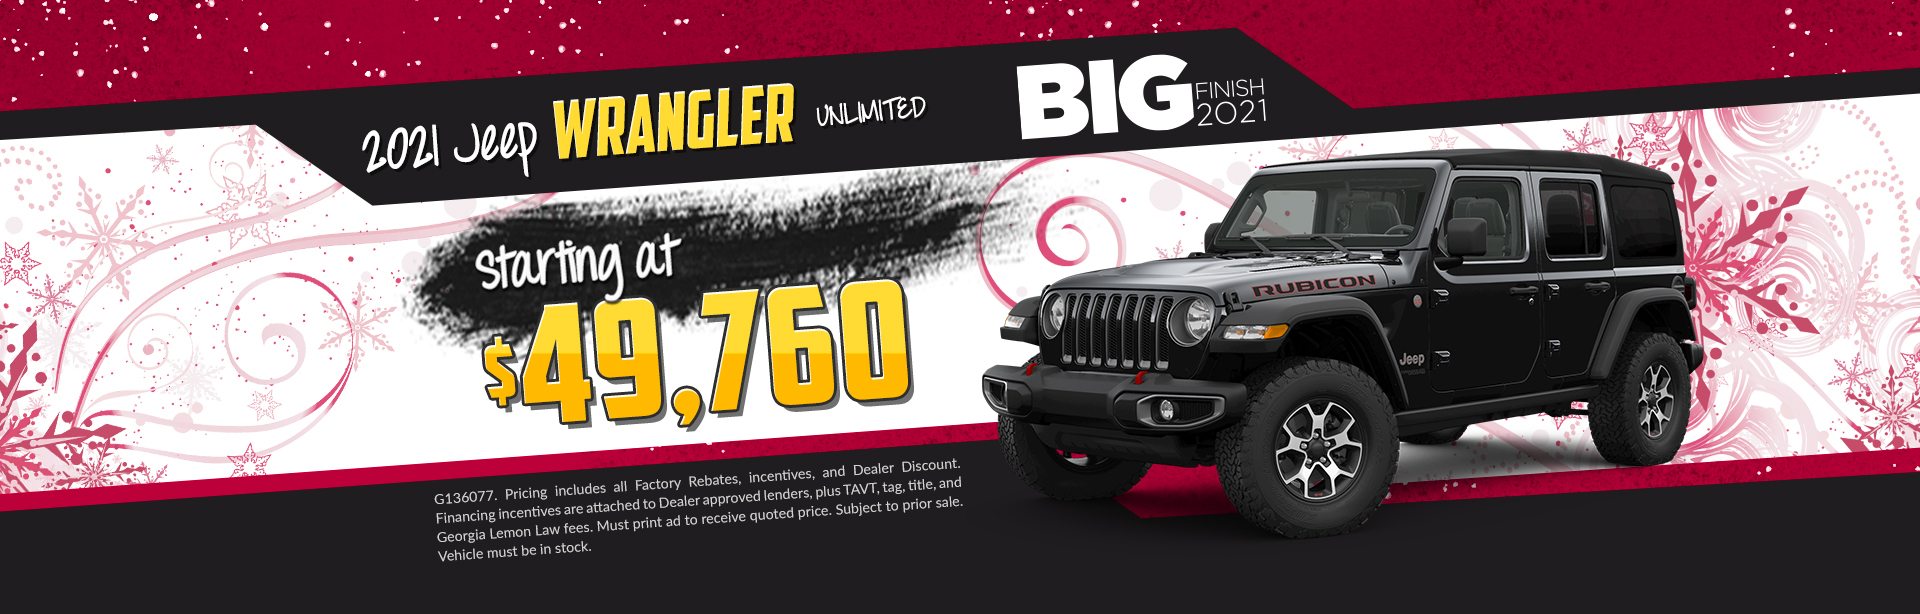 2020 Jeep Wrangler - $5,000 off list price